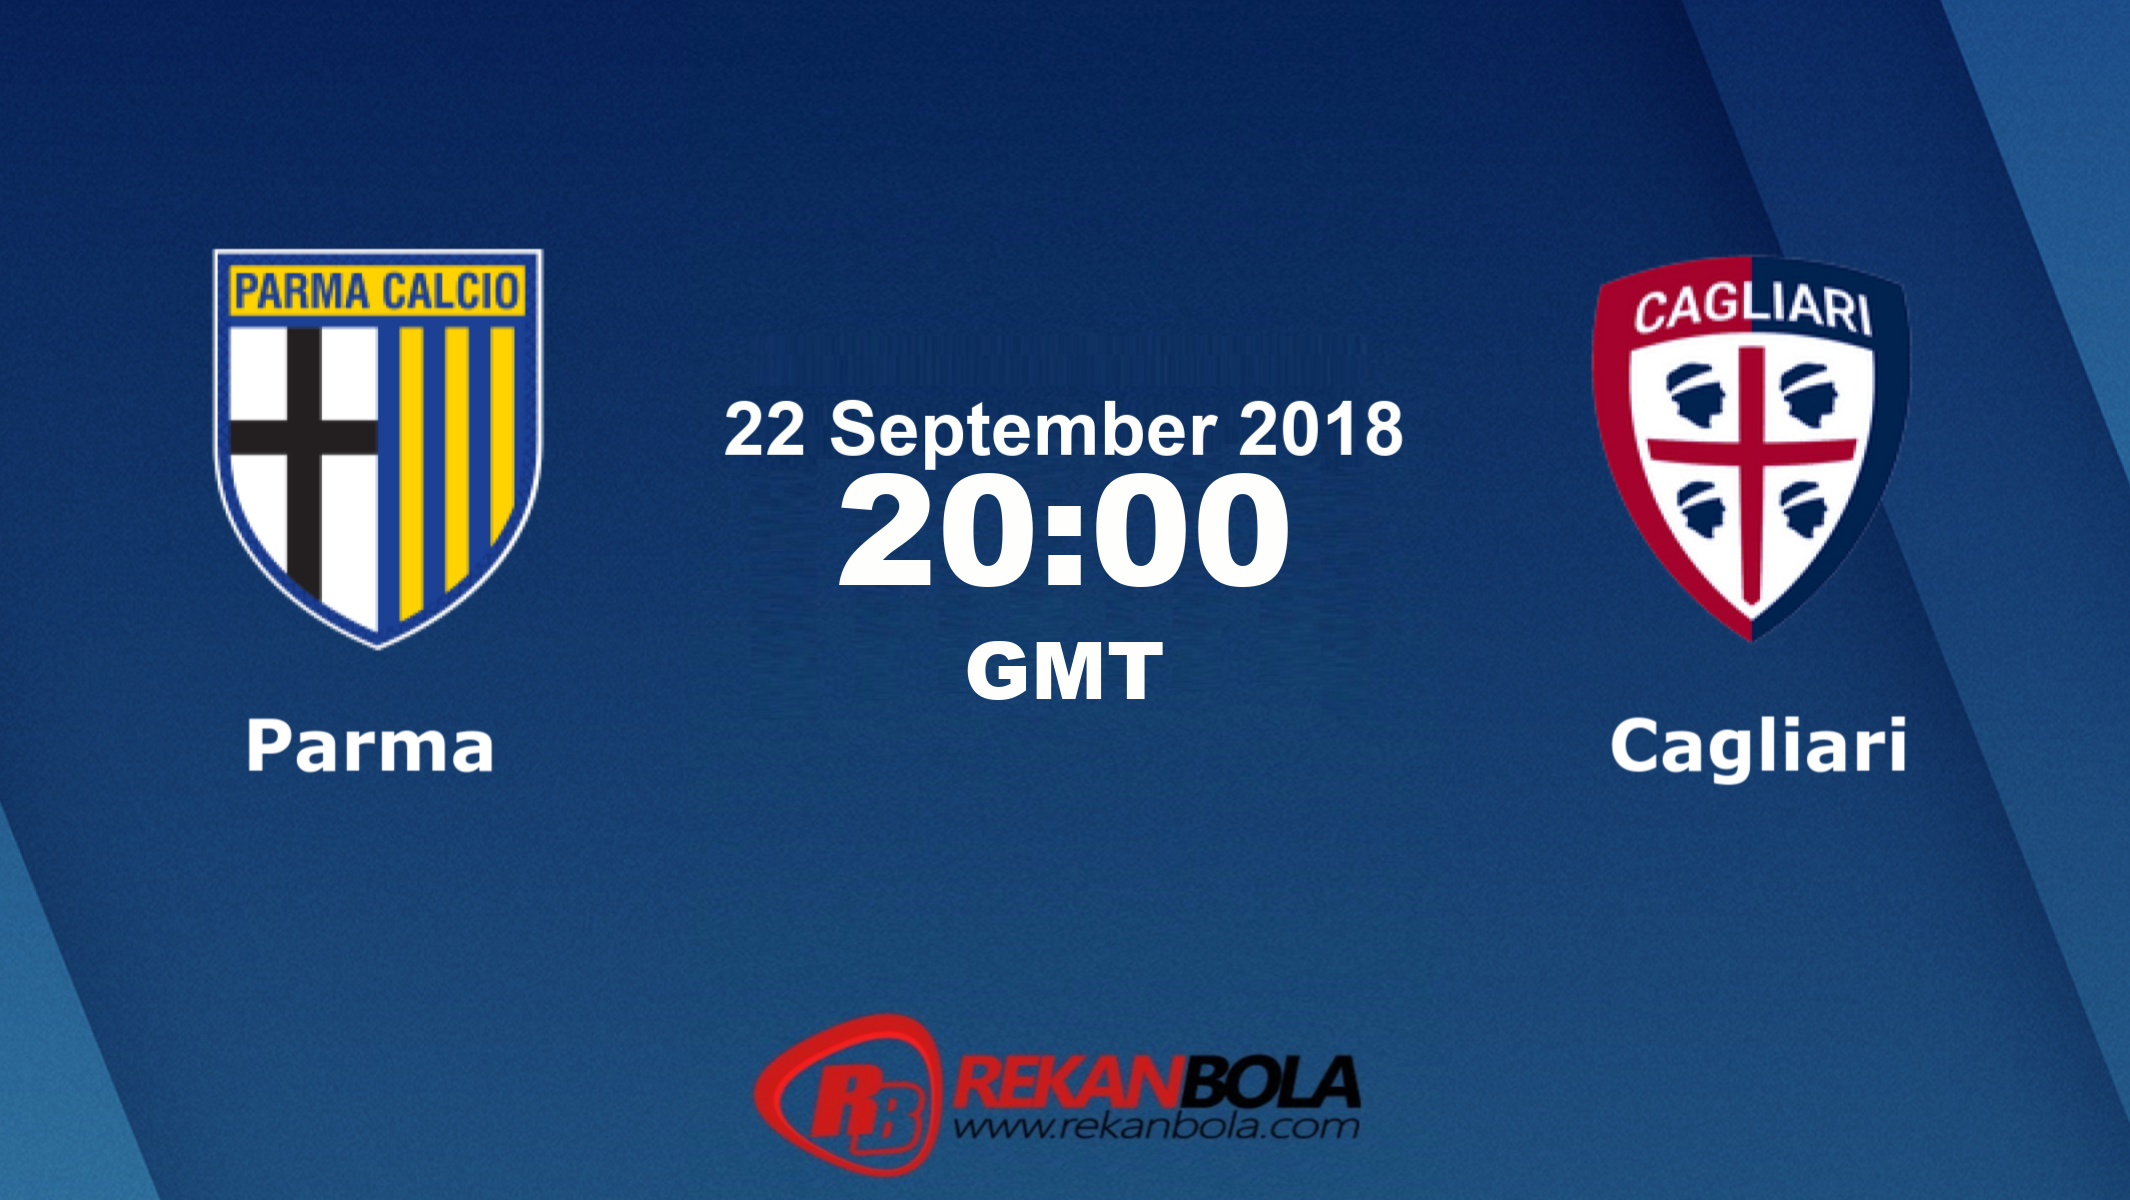 Nonton Siaran Live Streaming Parma Vs Cagliari 22 September 2018